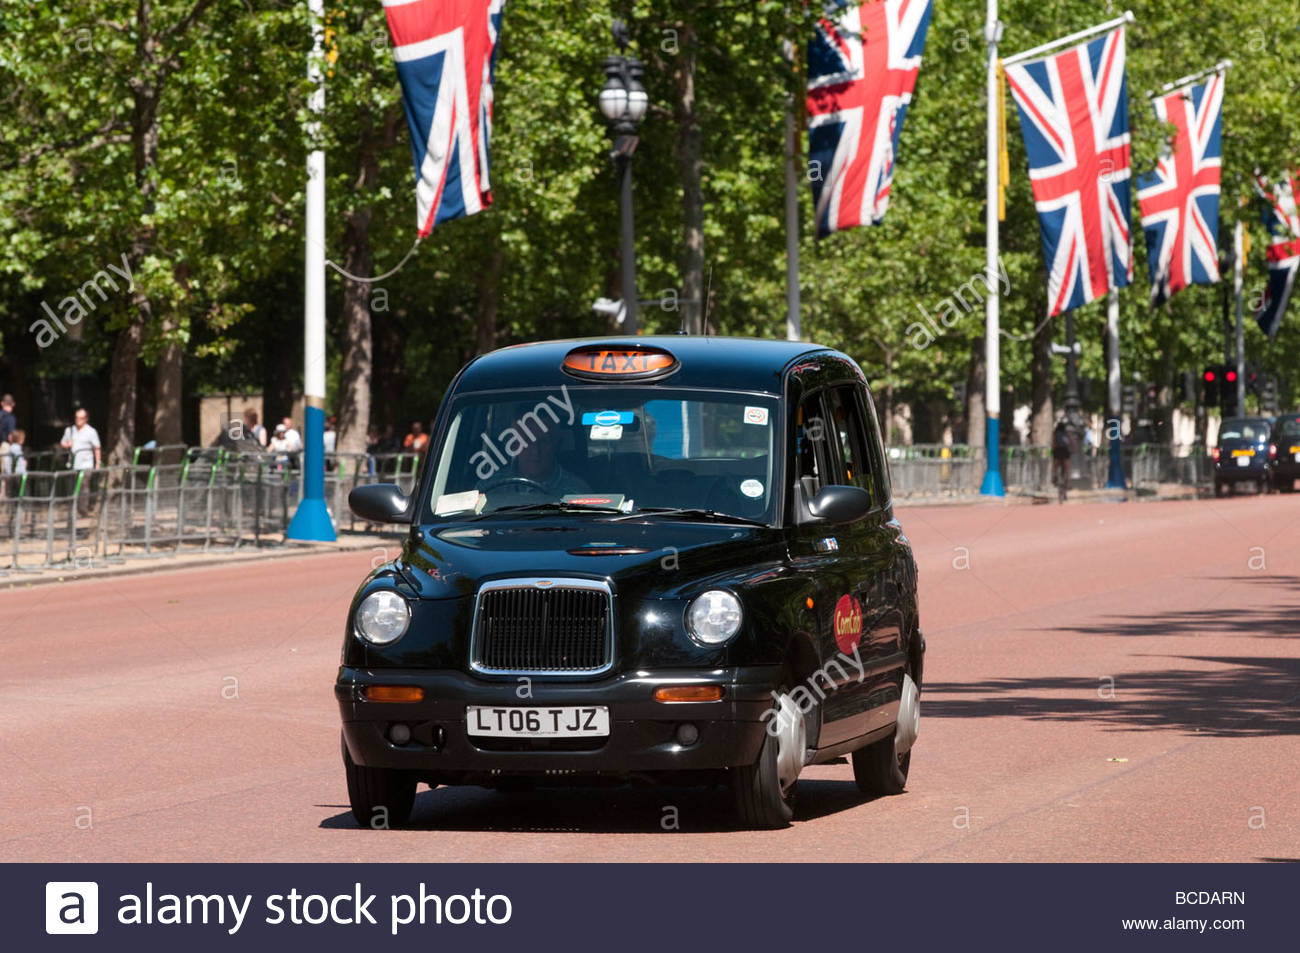 london black taxi cab on the mall england uk stock photo royalty free image 24880121 alamy. Black Bedroom Furniture Sets. Home Design Ideas